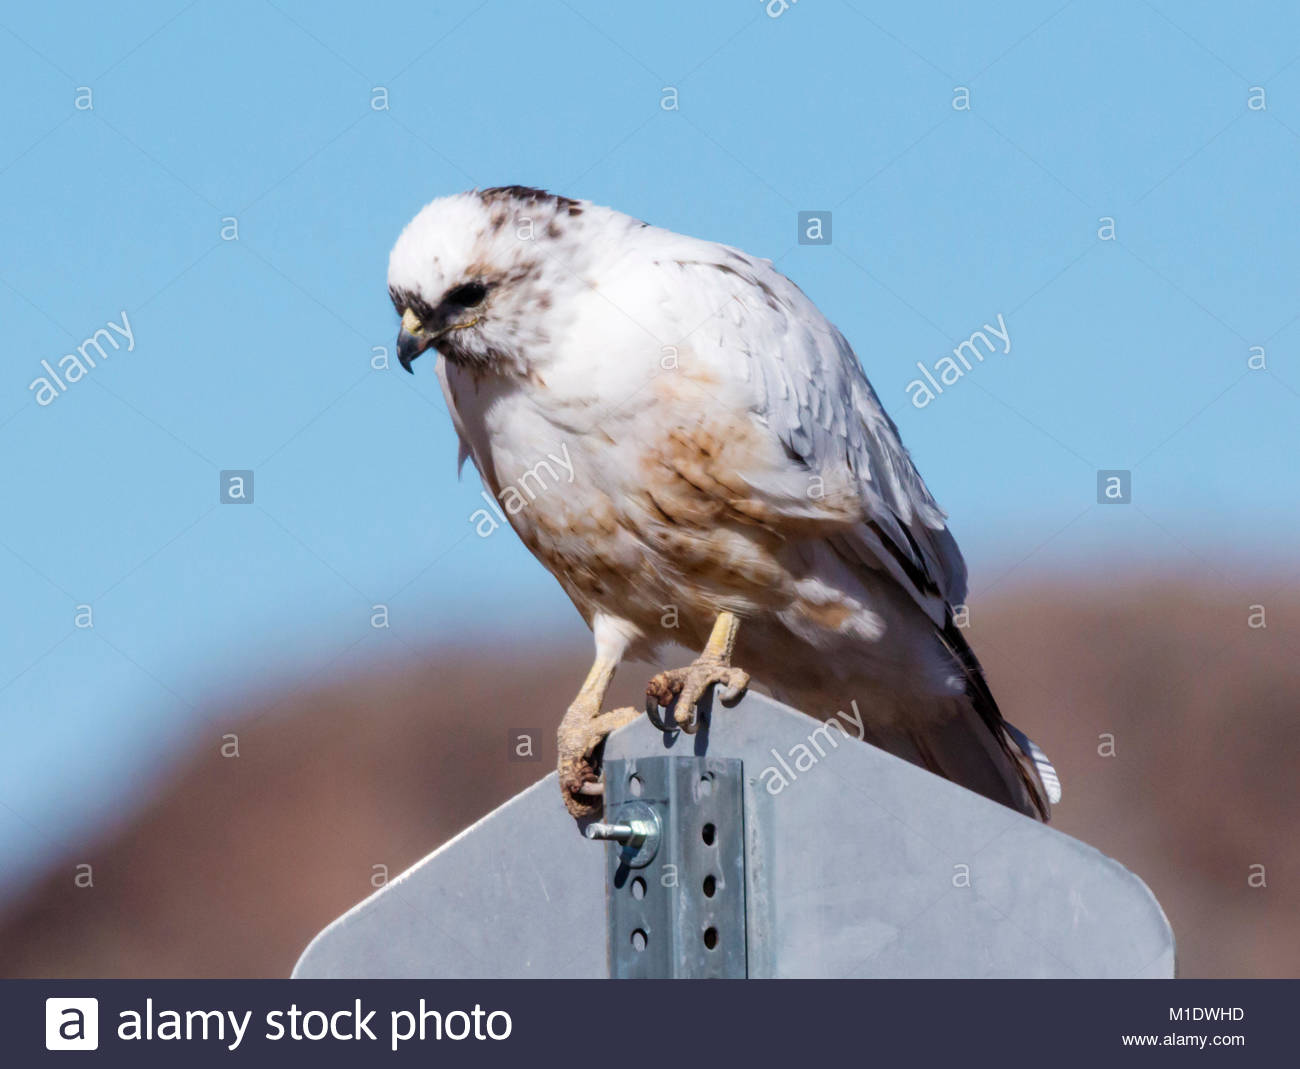 Leucistic Red-tailed Hawk, Buteo jamaicensis, perched on sign in  Arizona, USA - Stock Image